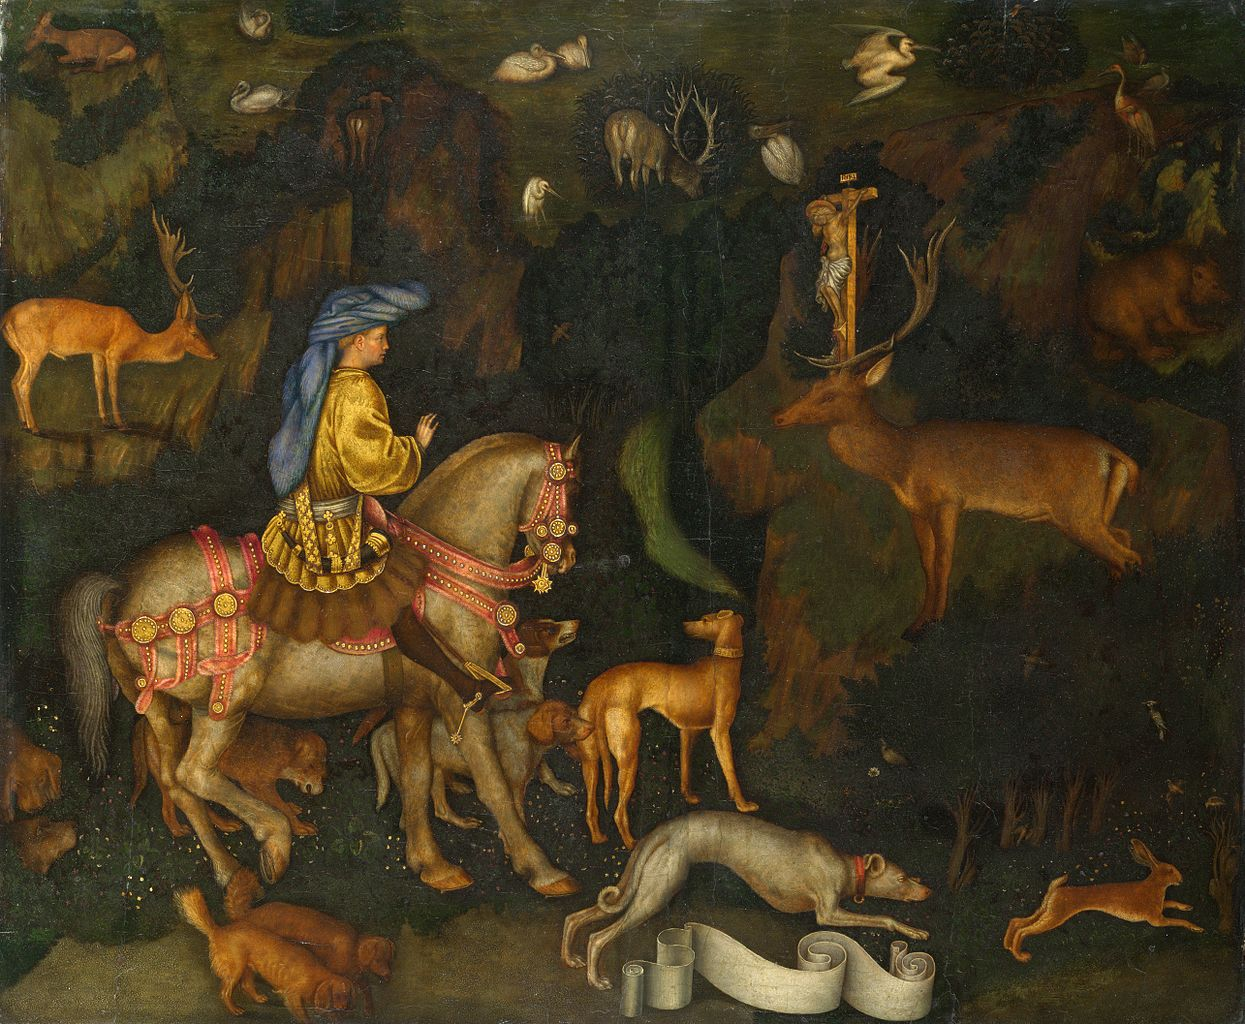 The Vision of Saint Eustace, 1438